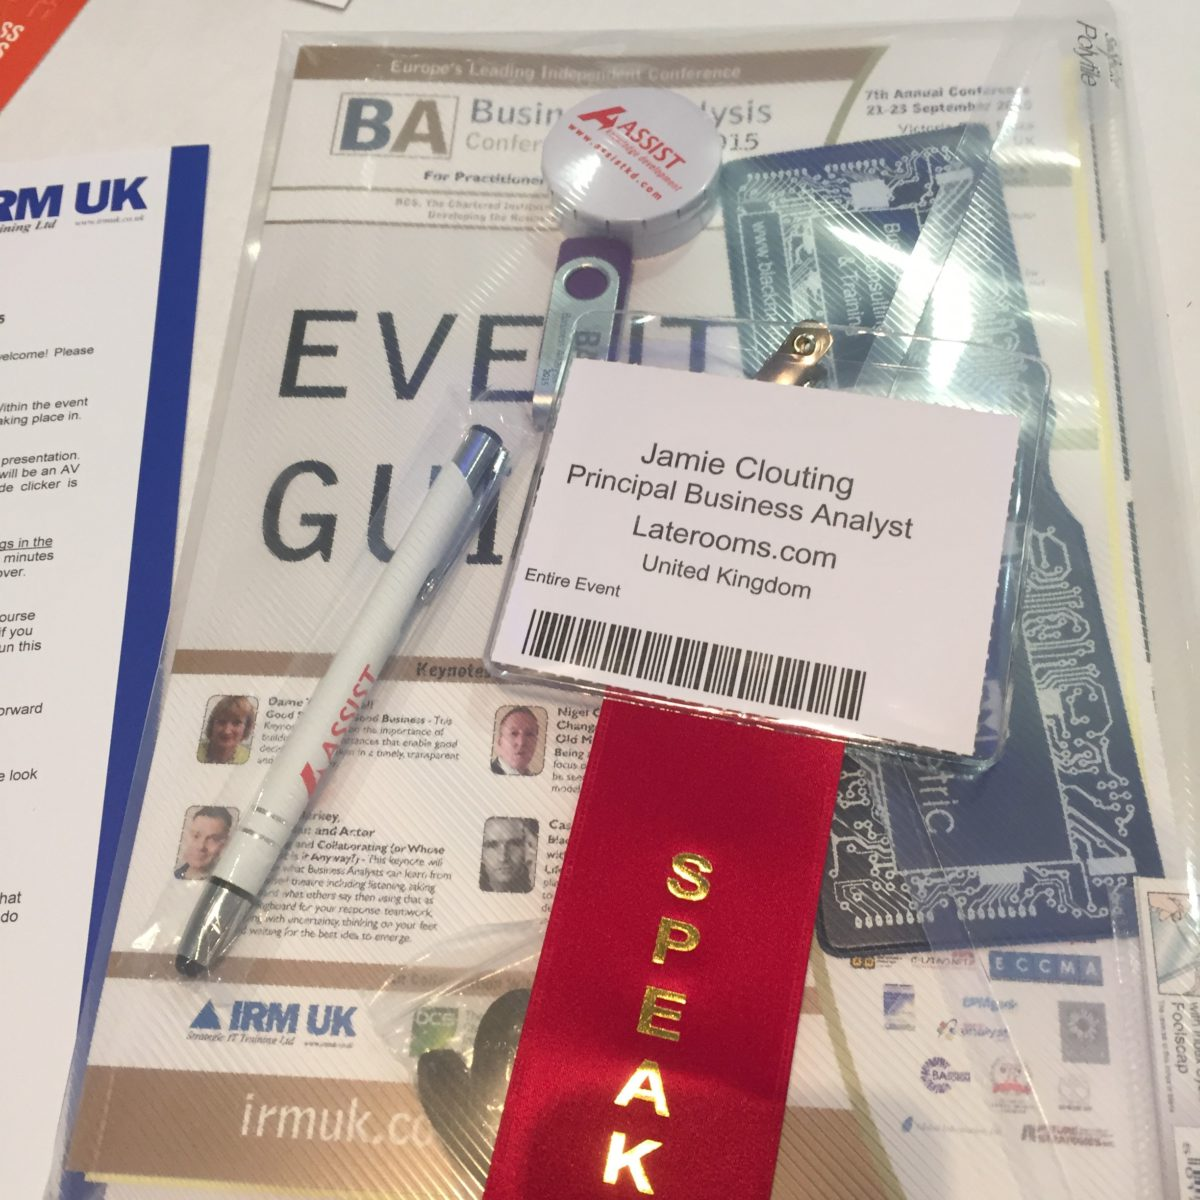 BA Conference Europe: Going beyond what success looks like